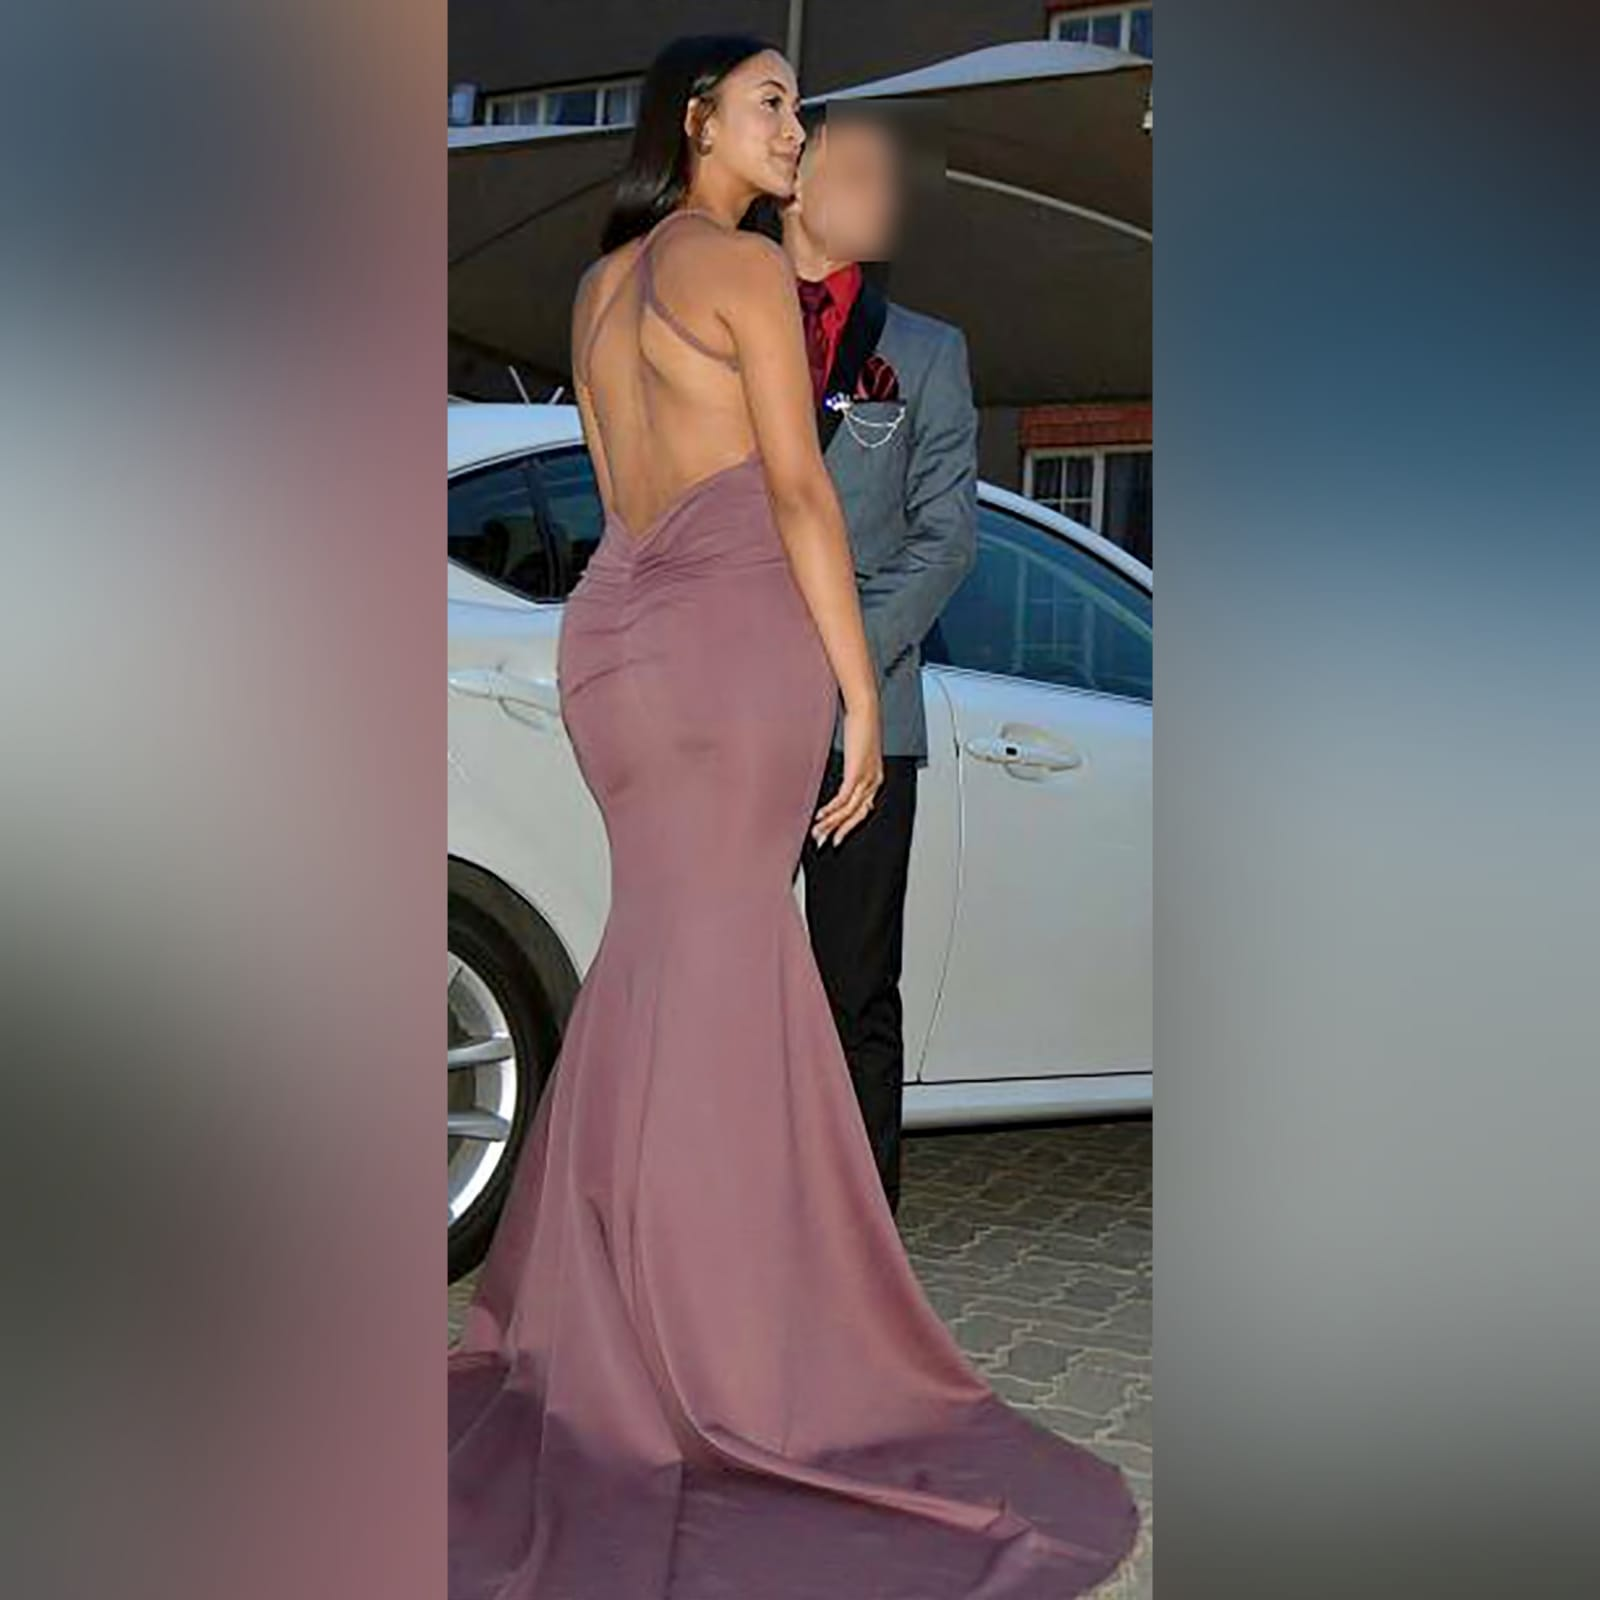 Mauve soft mermaid prom dress 4 mauve soft mermaid prom dress with a low open pleated back with cross strap with a train and a teardrop cleavage opening.